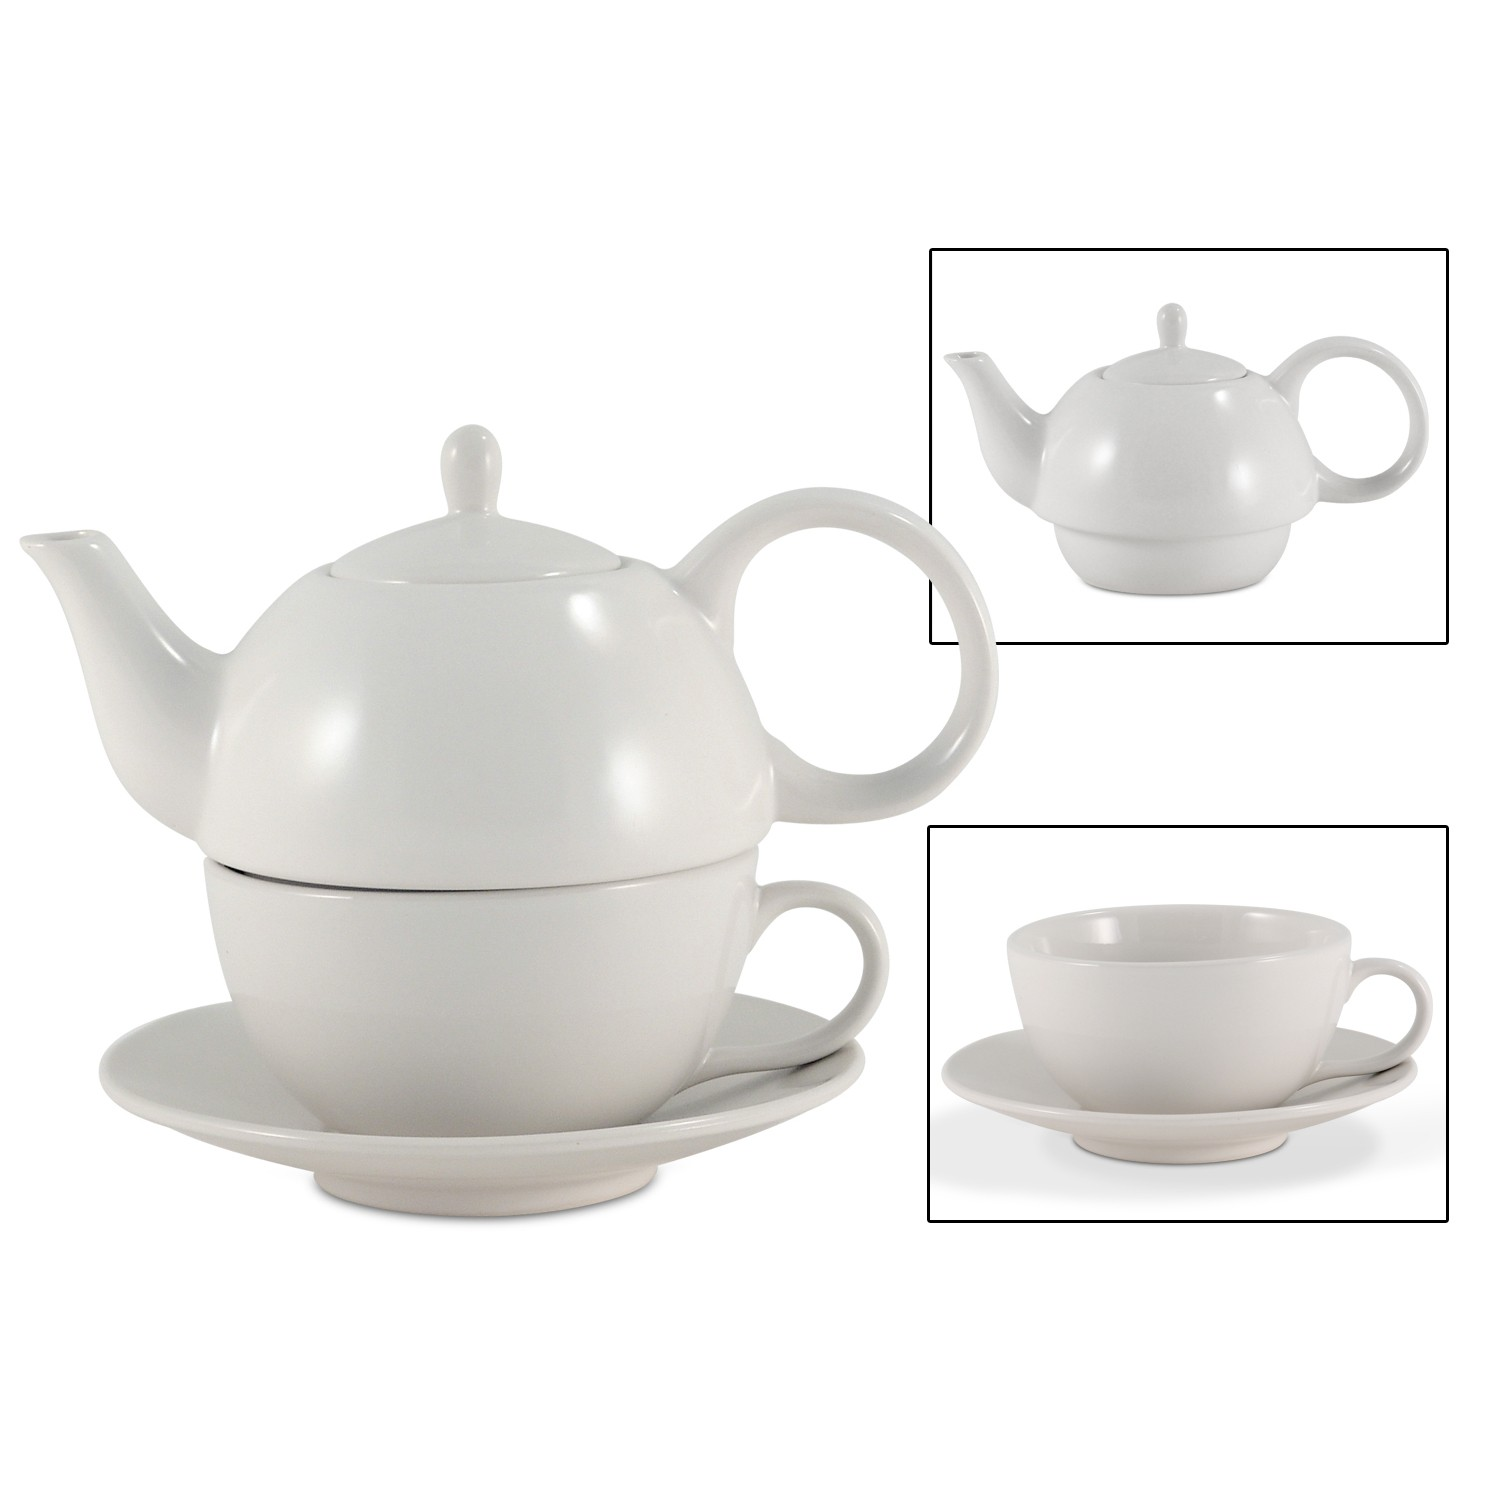 Teapot With Cup Ceramic Tea For One Set